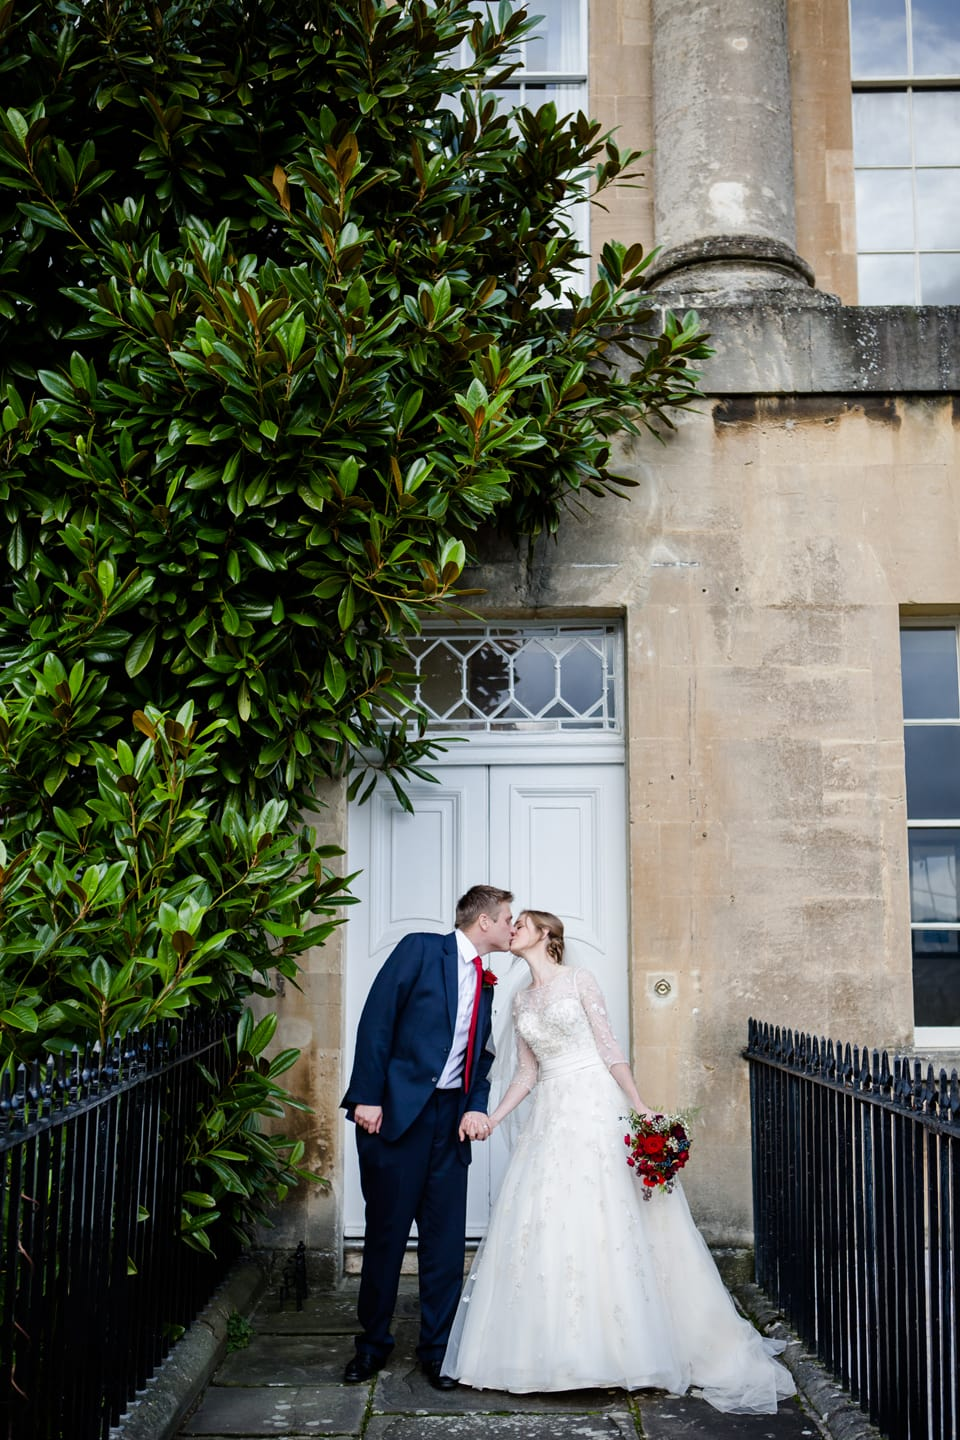 A Festive Winter Wedding at Bath Assembly Rooms